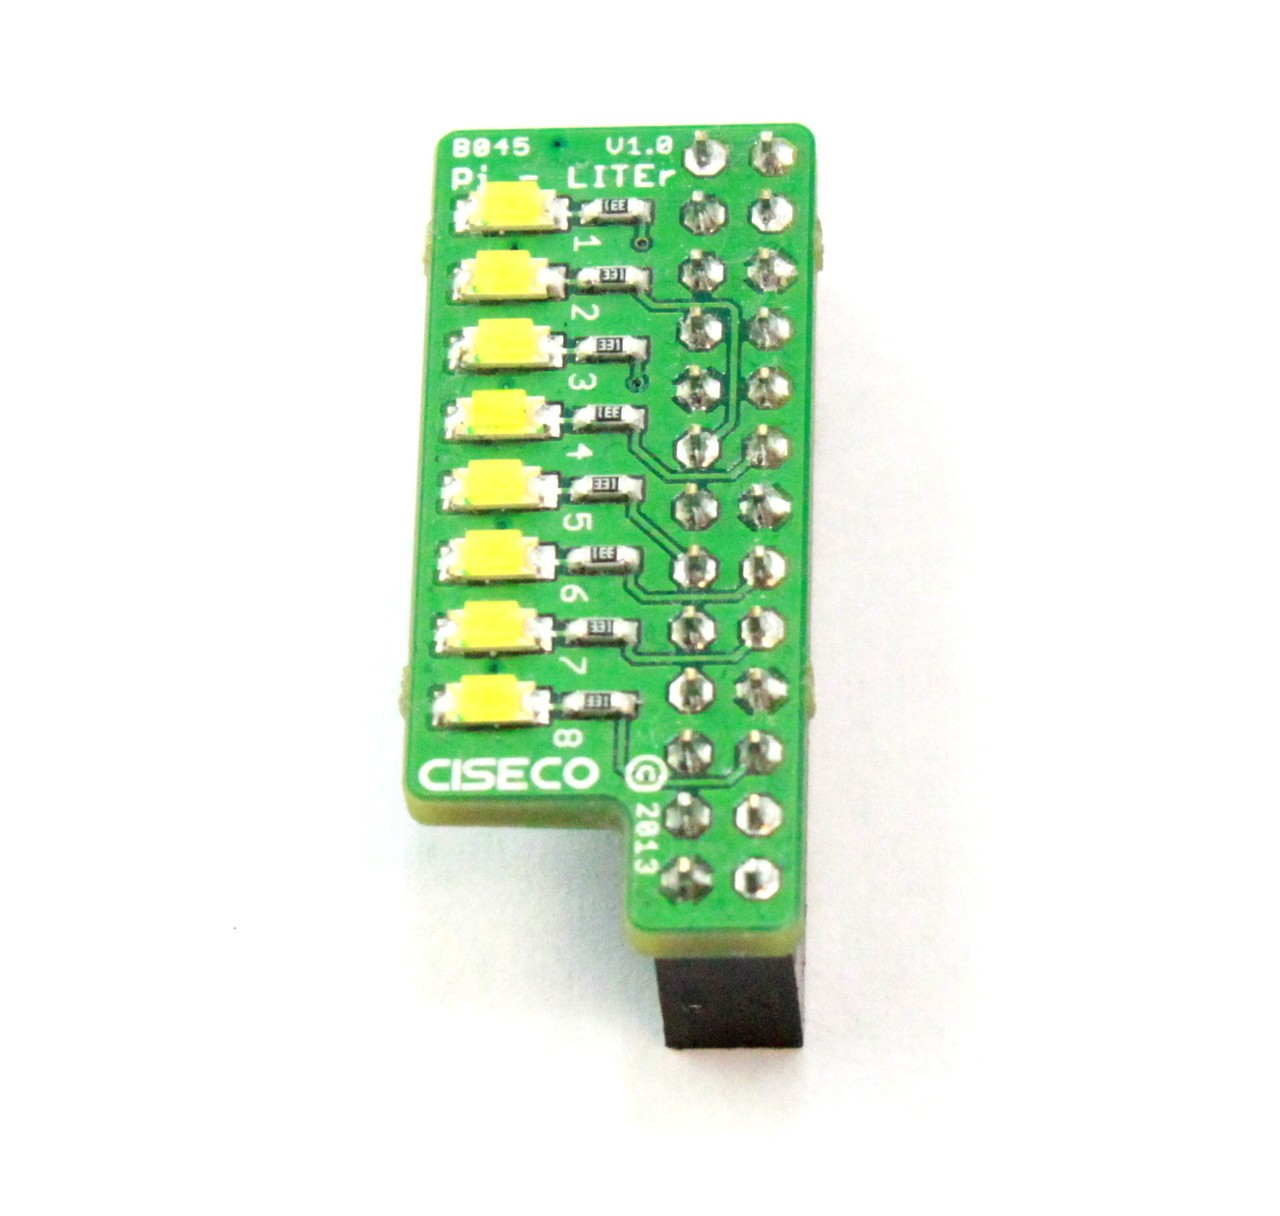 Pi Liter 8 Led Strip For The Raspberry Ciseco B045 Rlx Wiringpi Examples Components Sro Electronic Distributor